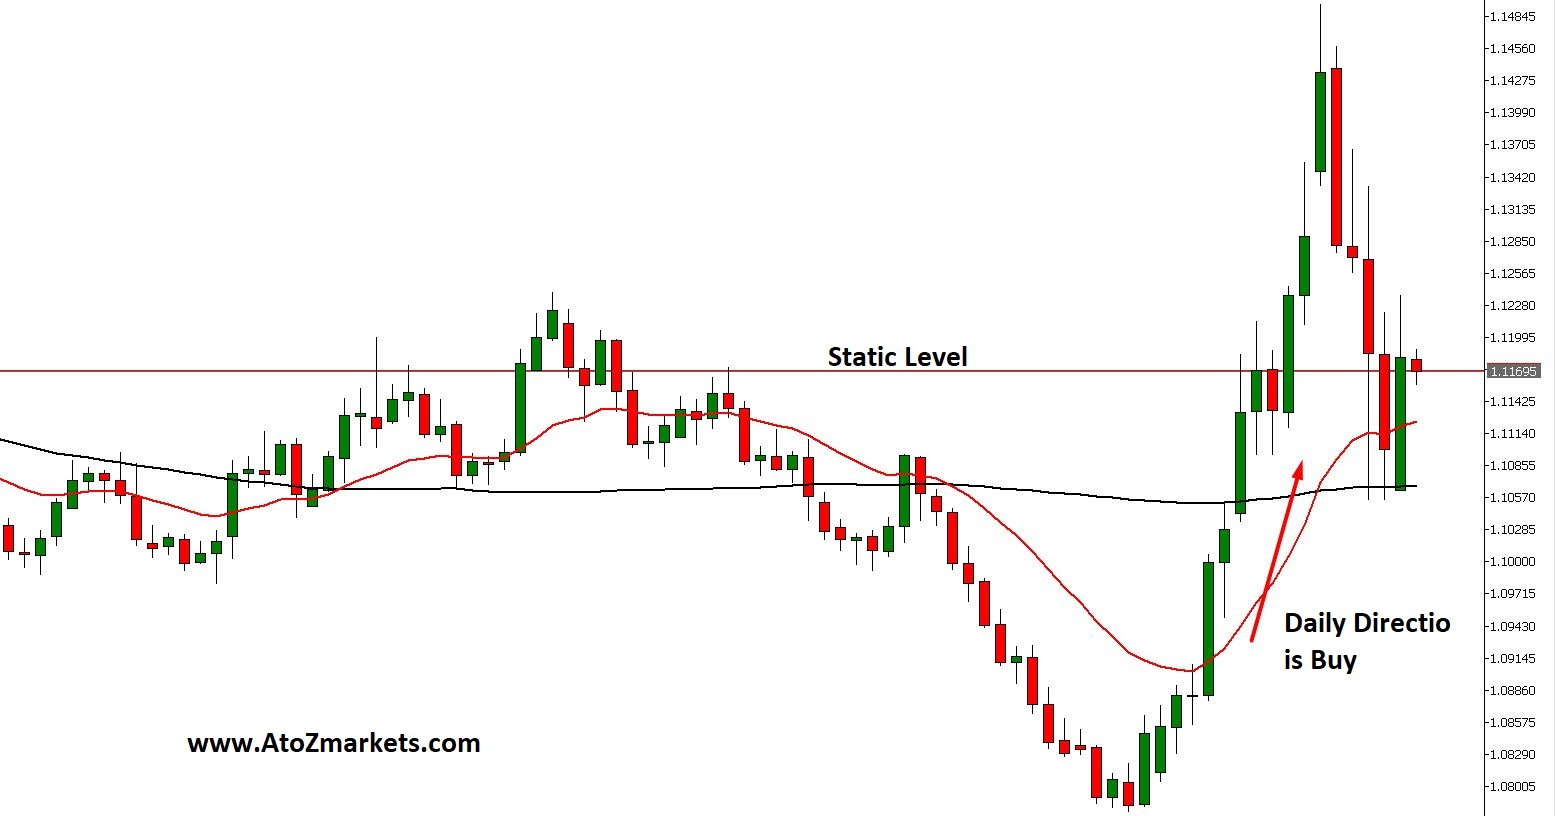 Dynamic Levels Forex Trading